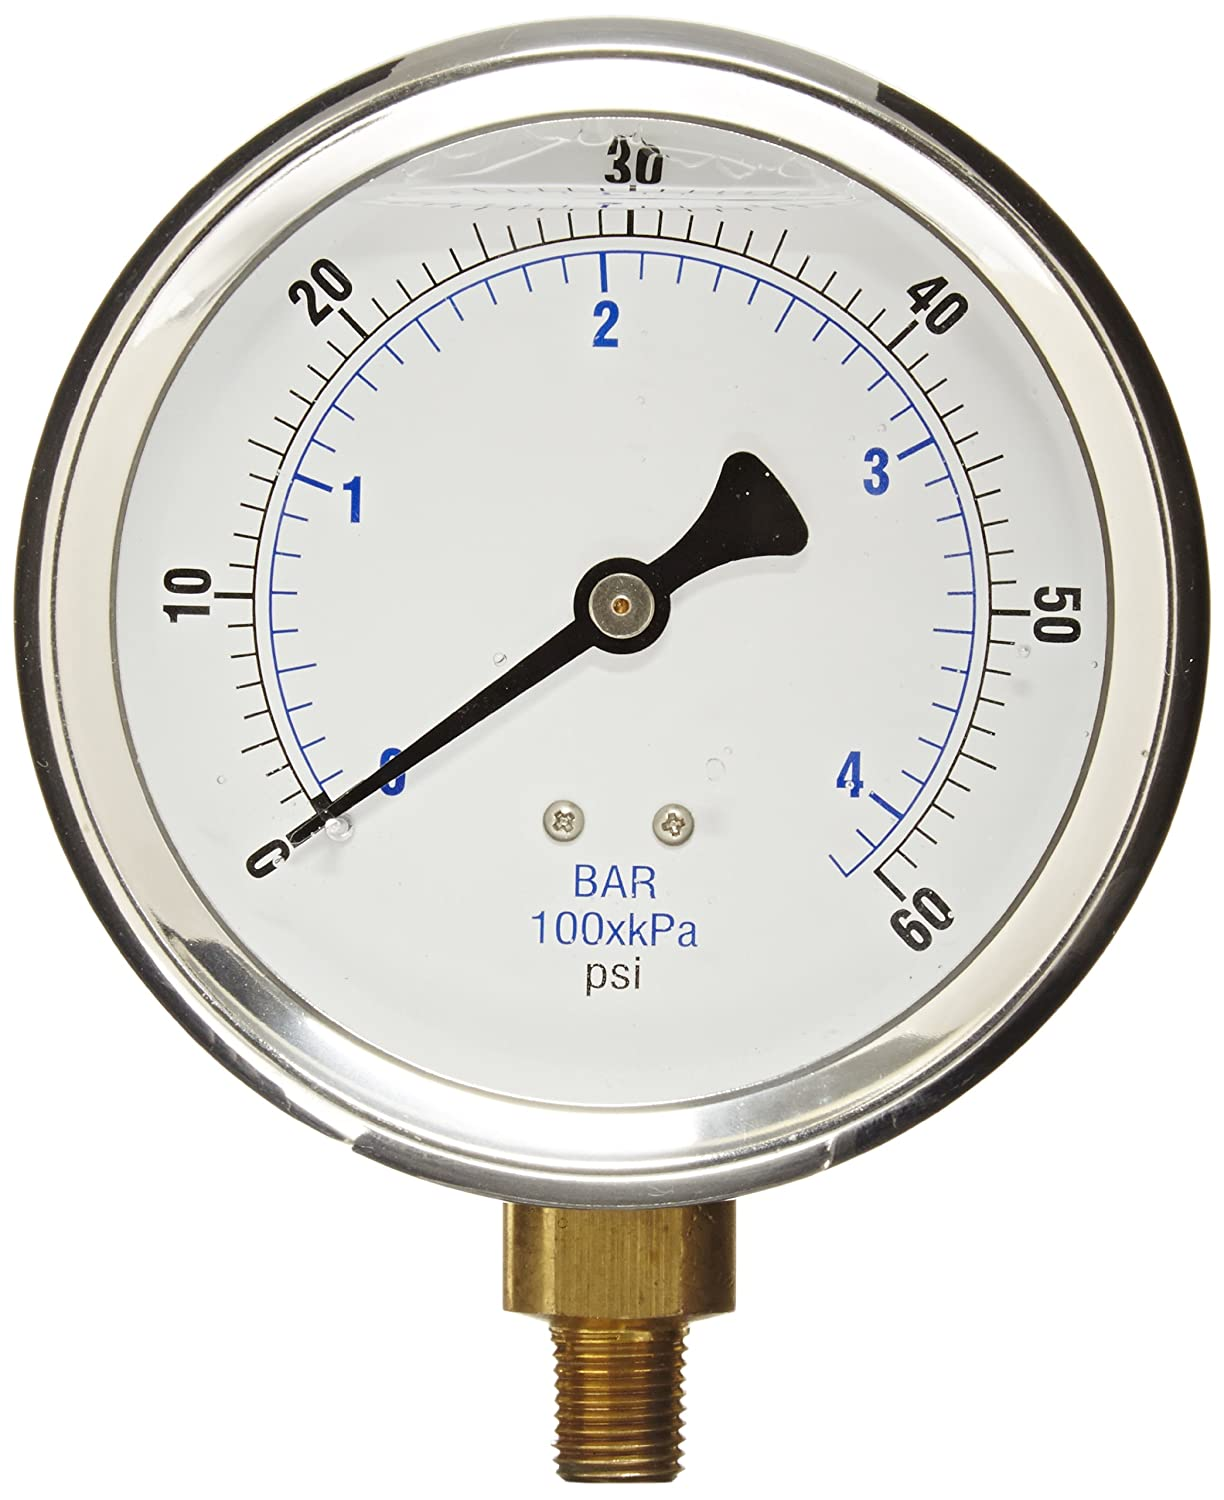 PIC Gauge 201L 404D 4 Dial 0 60 psi Range 1 4 Male NPT Connection Size Bottom Mount Glycerine Filled Pressure Gauge with a Stainless Steel Case Brass Internals Stainless Steel Bezel and Polycarbonate Lens